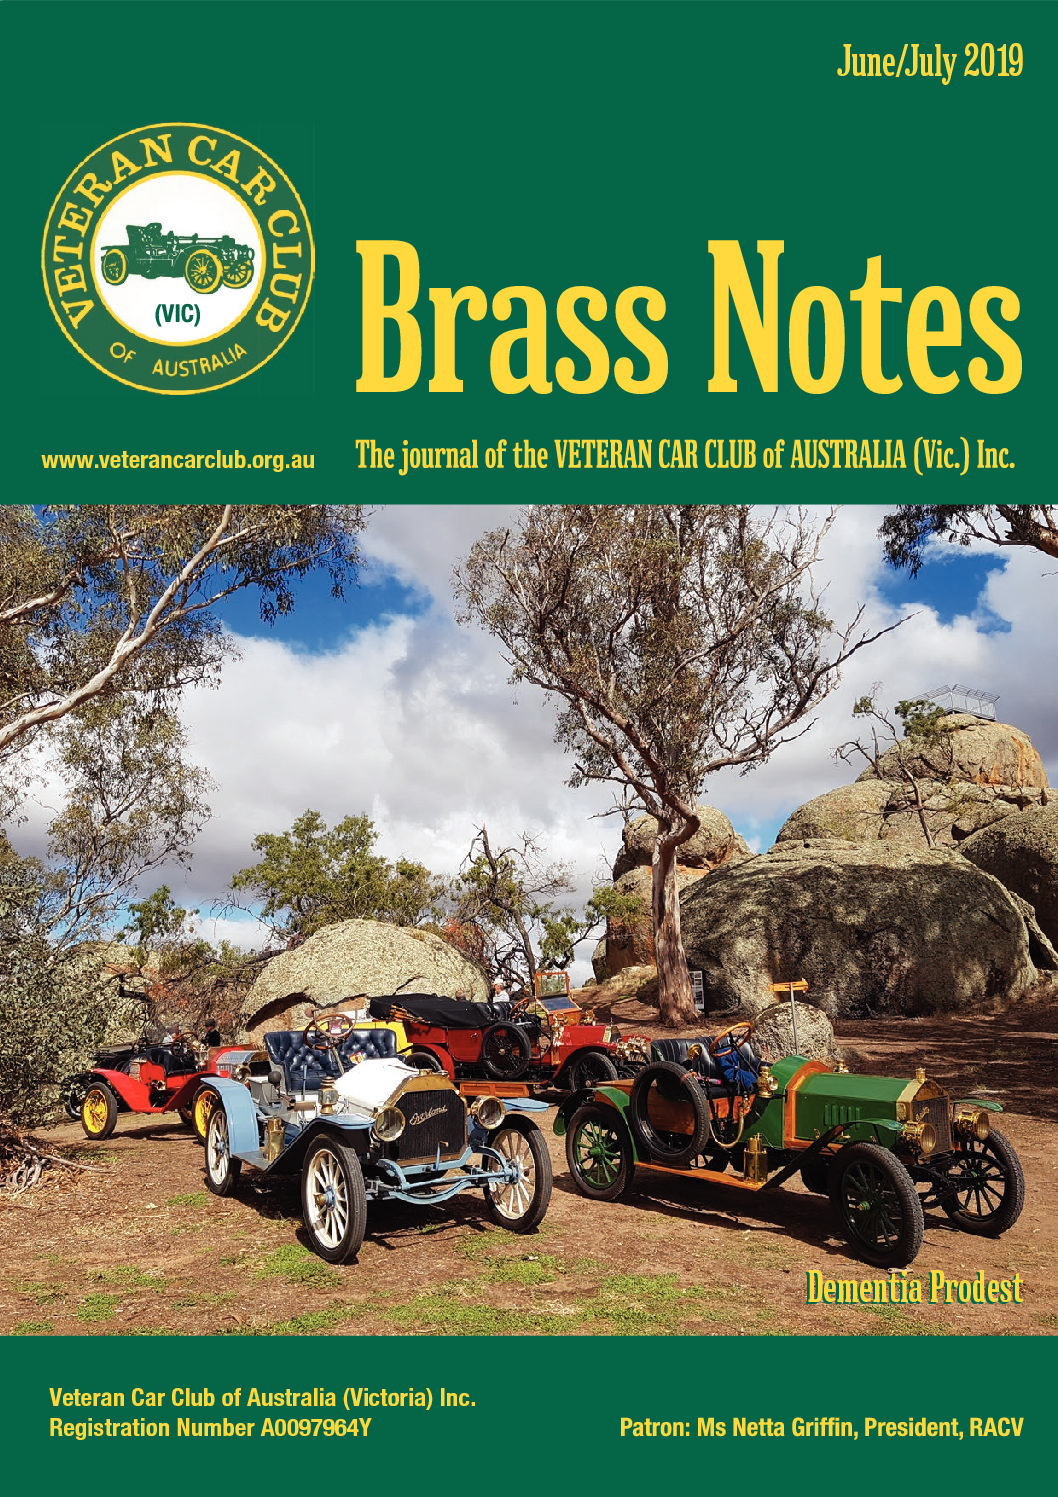 Brass Notes June/July 2019